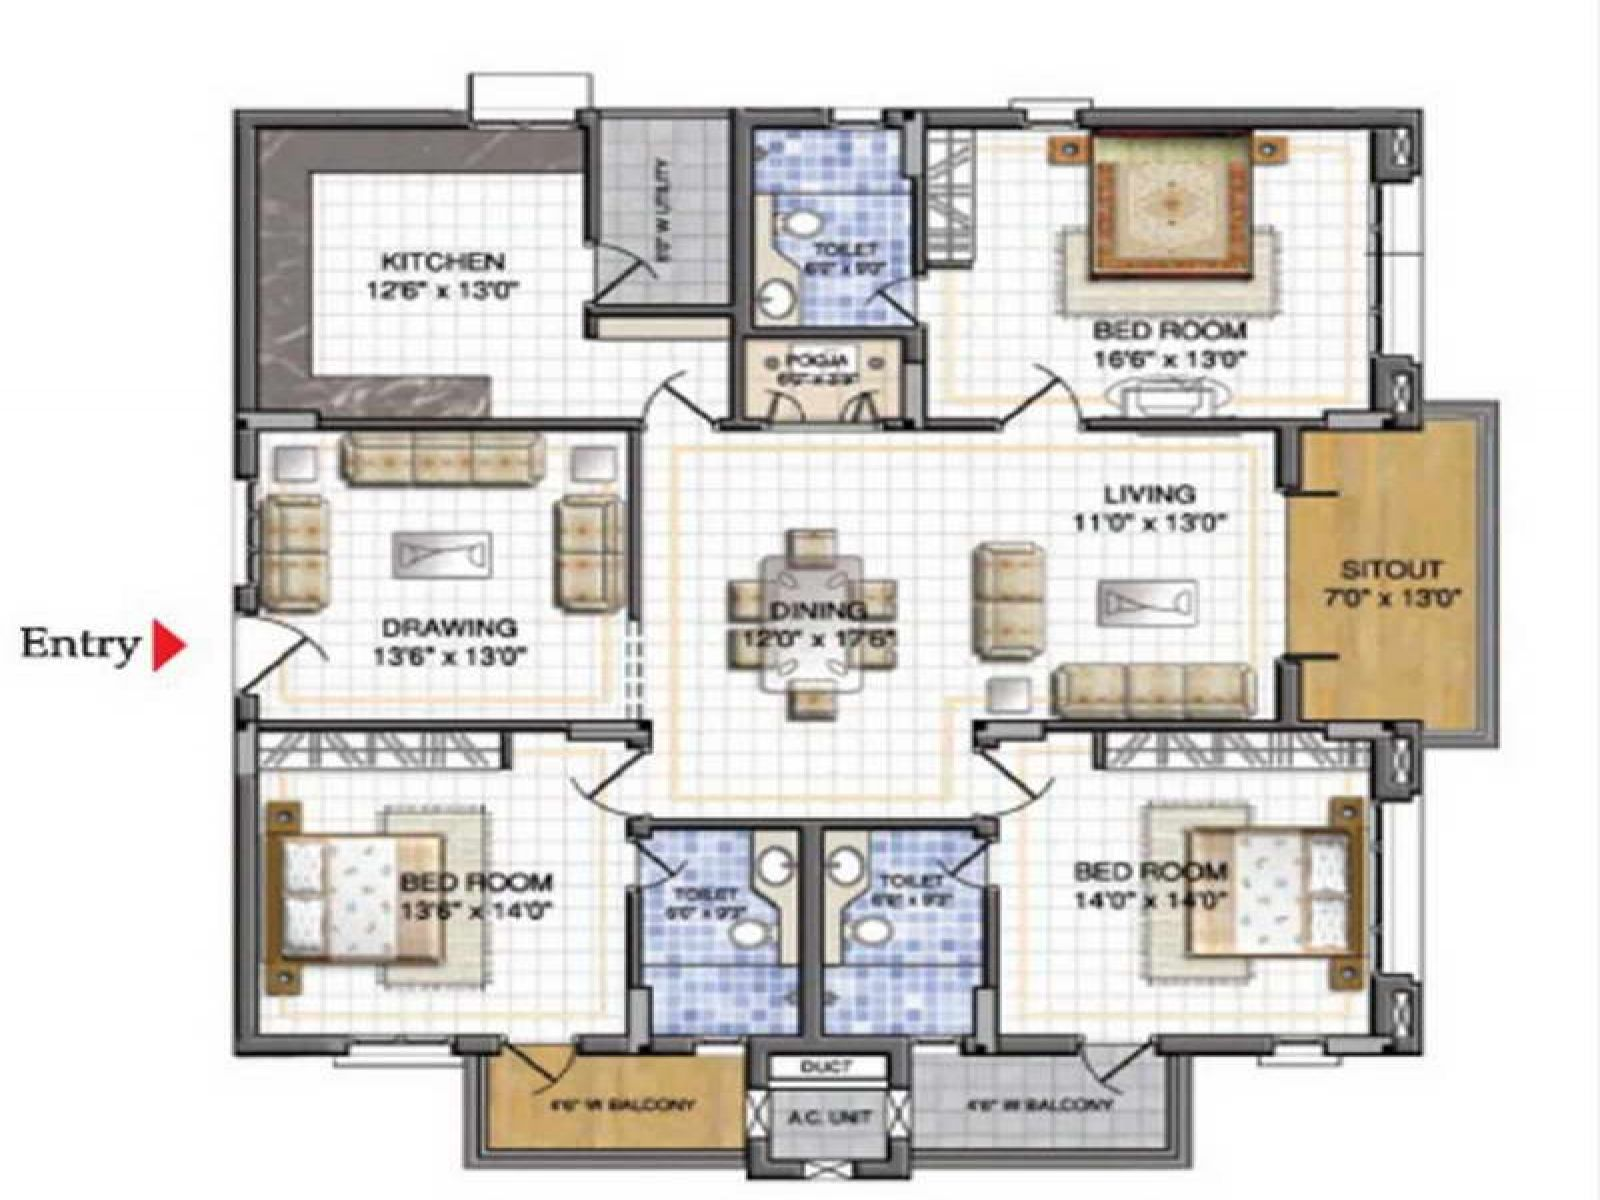 Sweet home 3d plans google search house designs pinterest layout online house plans - Home construction design software ...